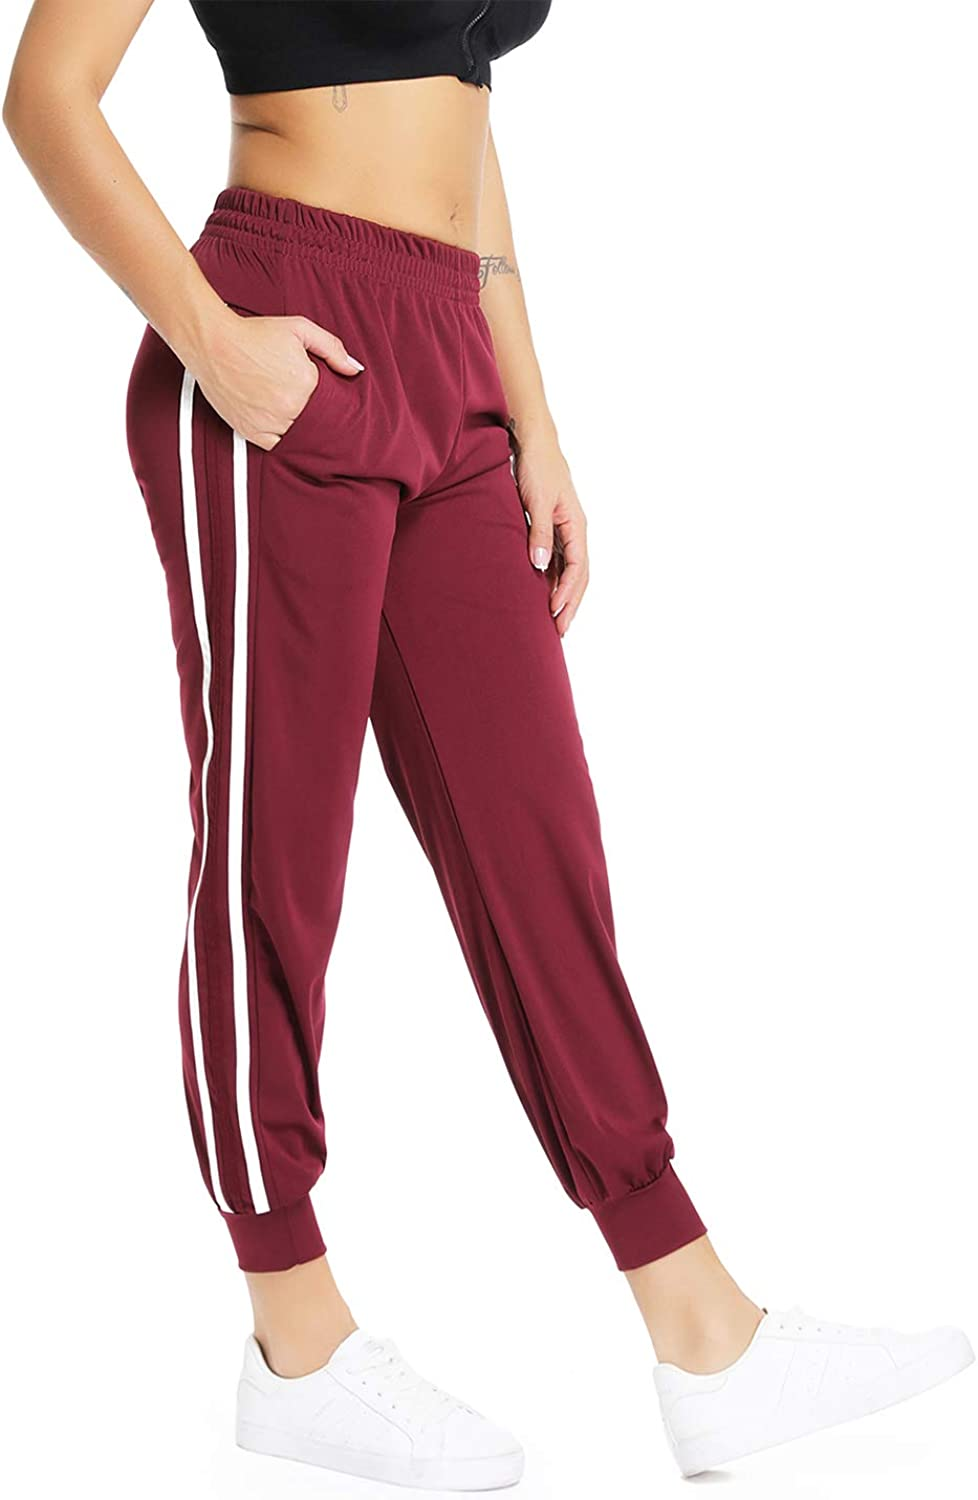 RIOJOY Women's Side Stripes Cuffed Pants Knit Trousers Athletic Training Casual Joggers Sweatpants with Pockets